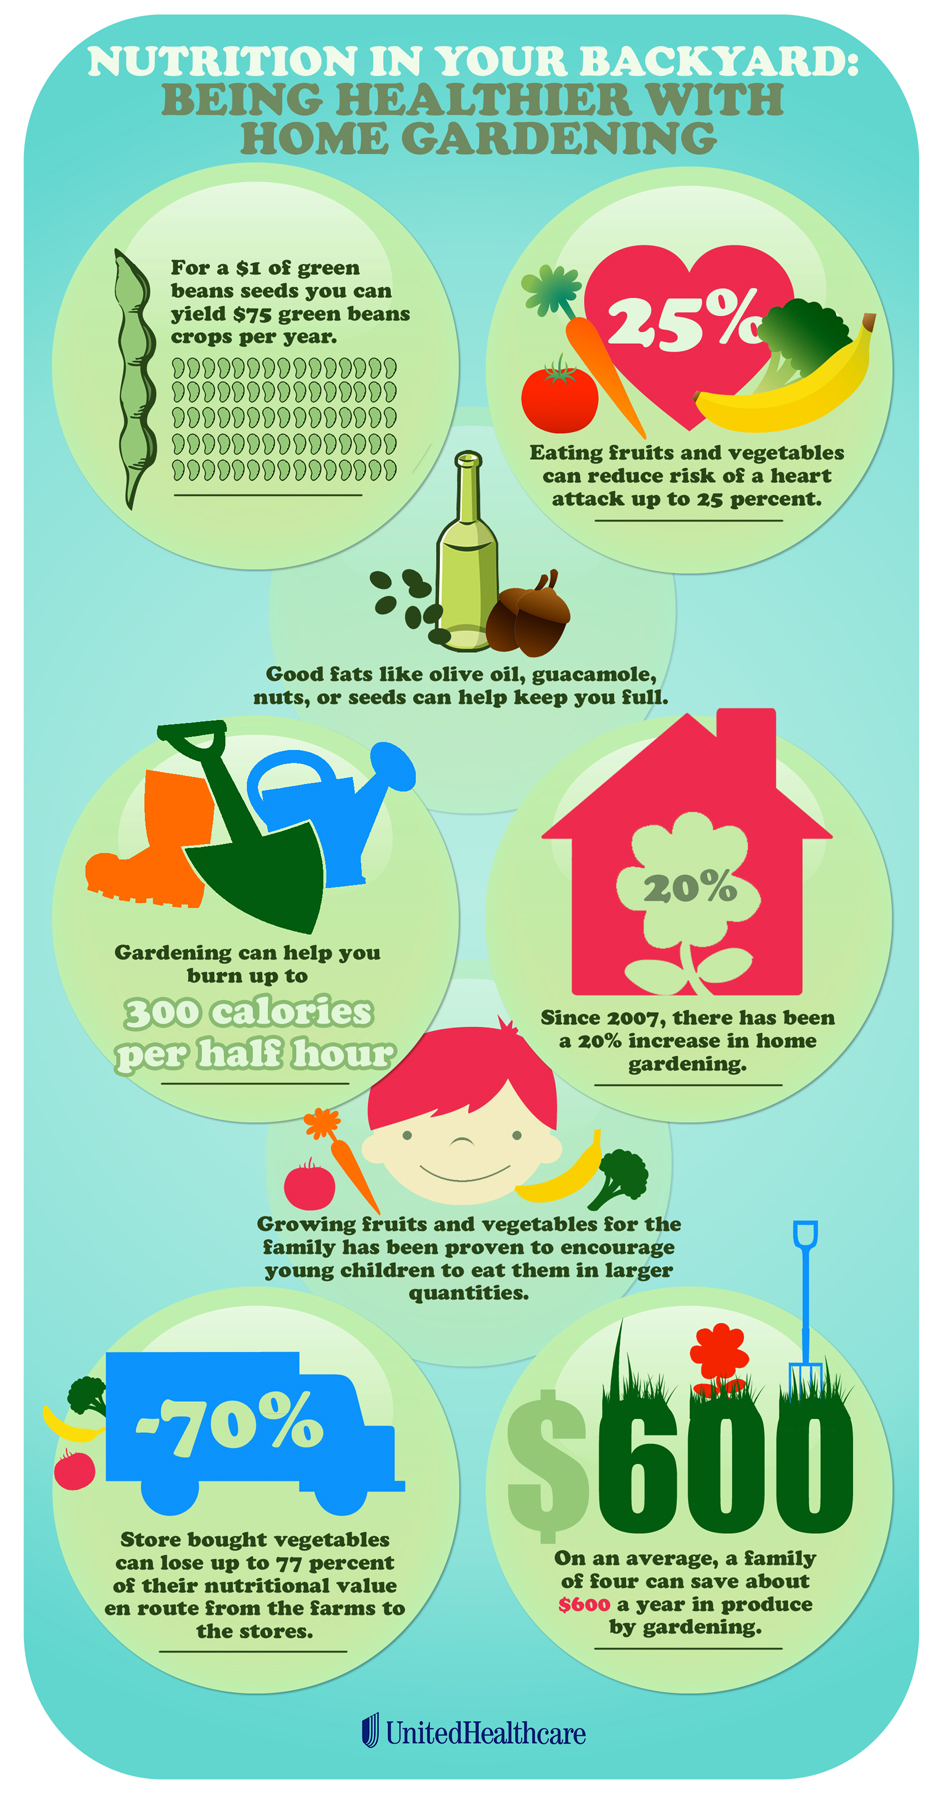 nutrition in your backyard being healthier with home gardening